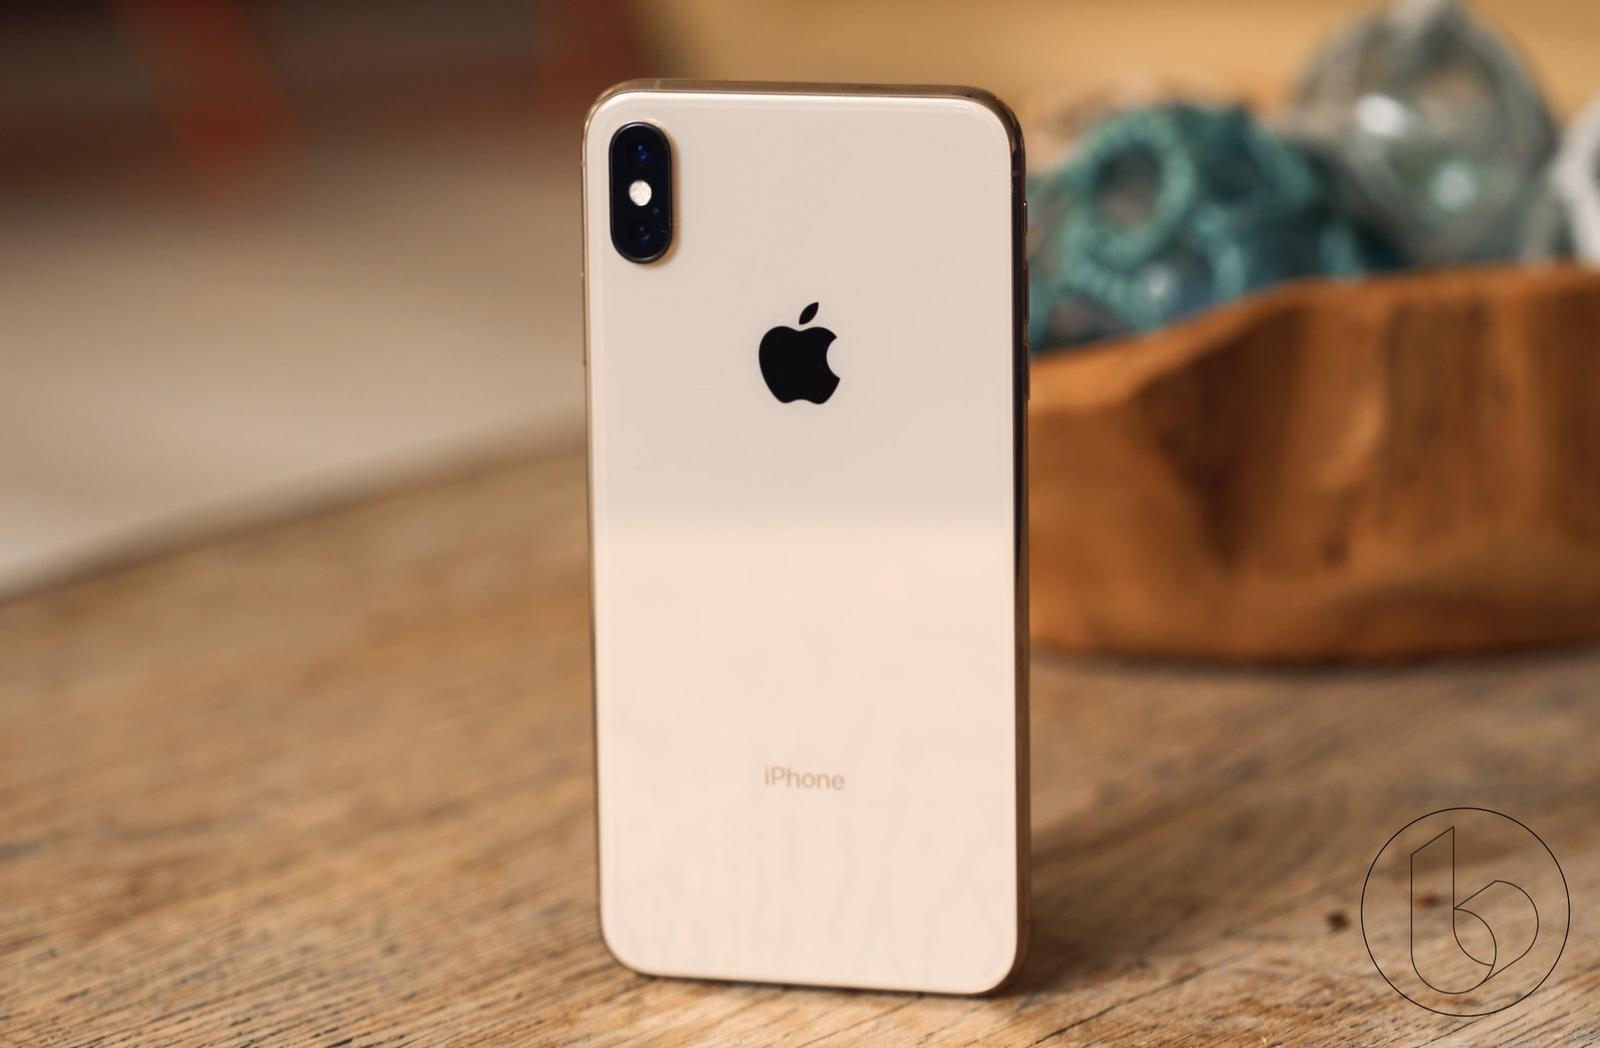 Apple is holding a 'Shot on iPhone' photo contest